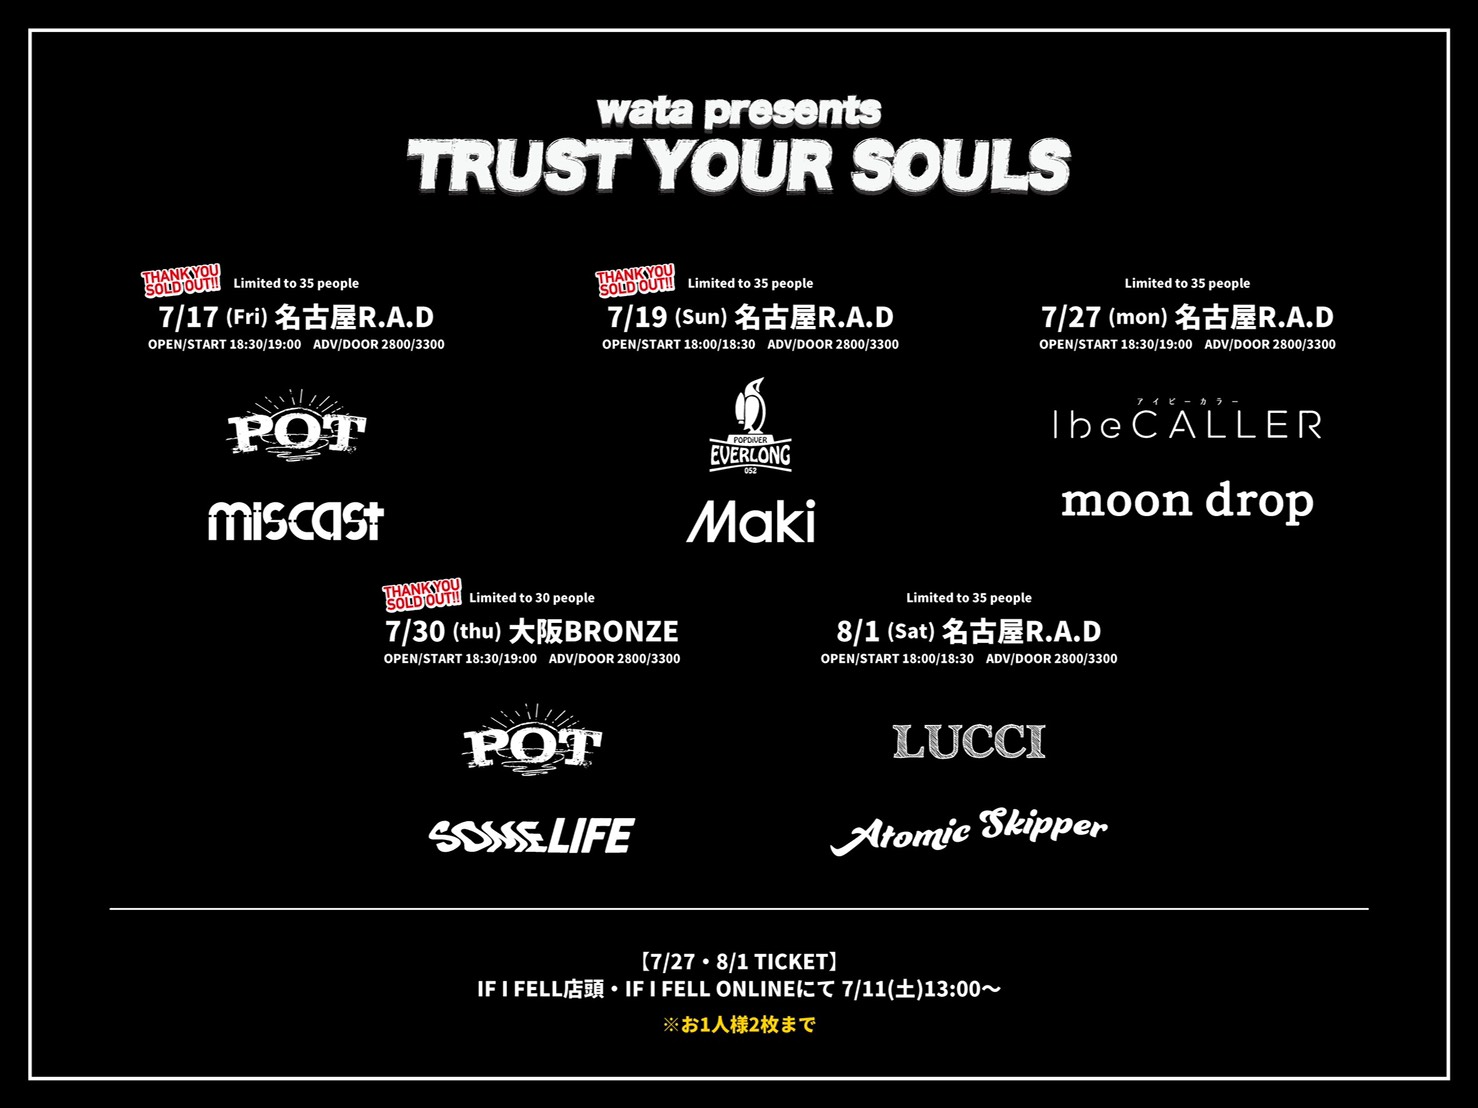 wata presents TRUST YOUR SOULS